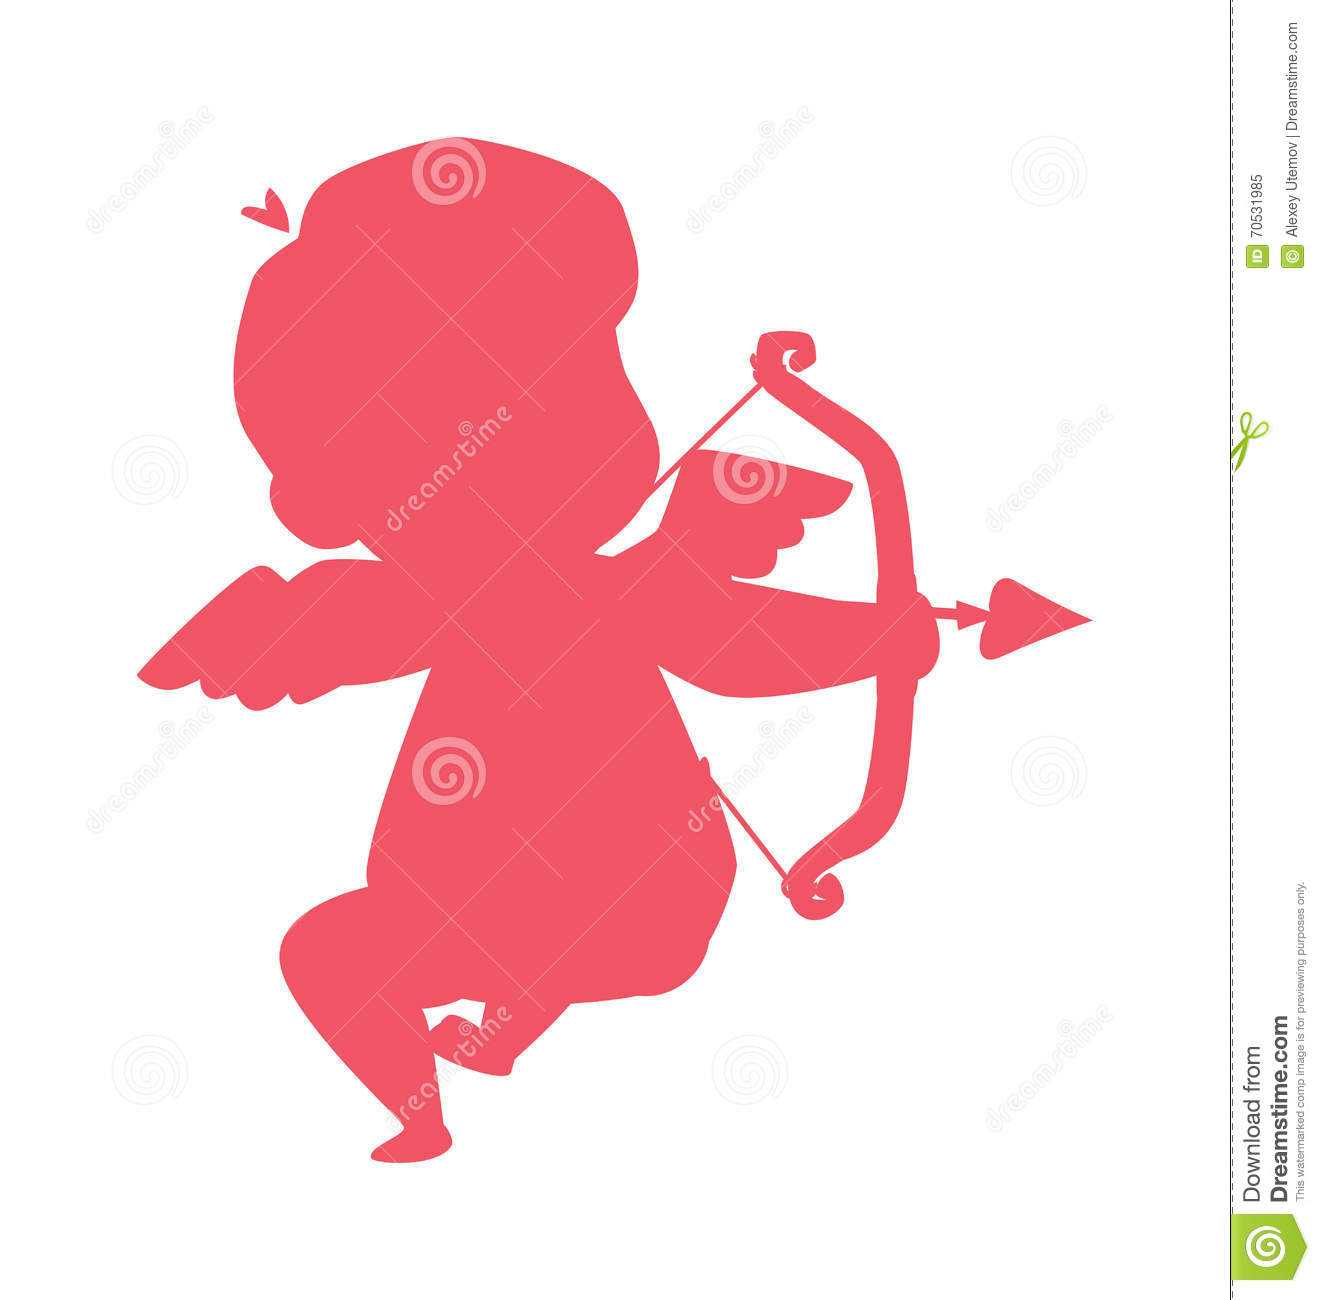 Schön Silhouette Of Cupid Valentine Angel Love Child Vector Illustration.